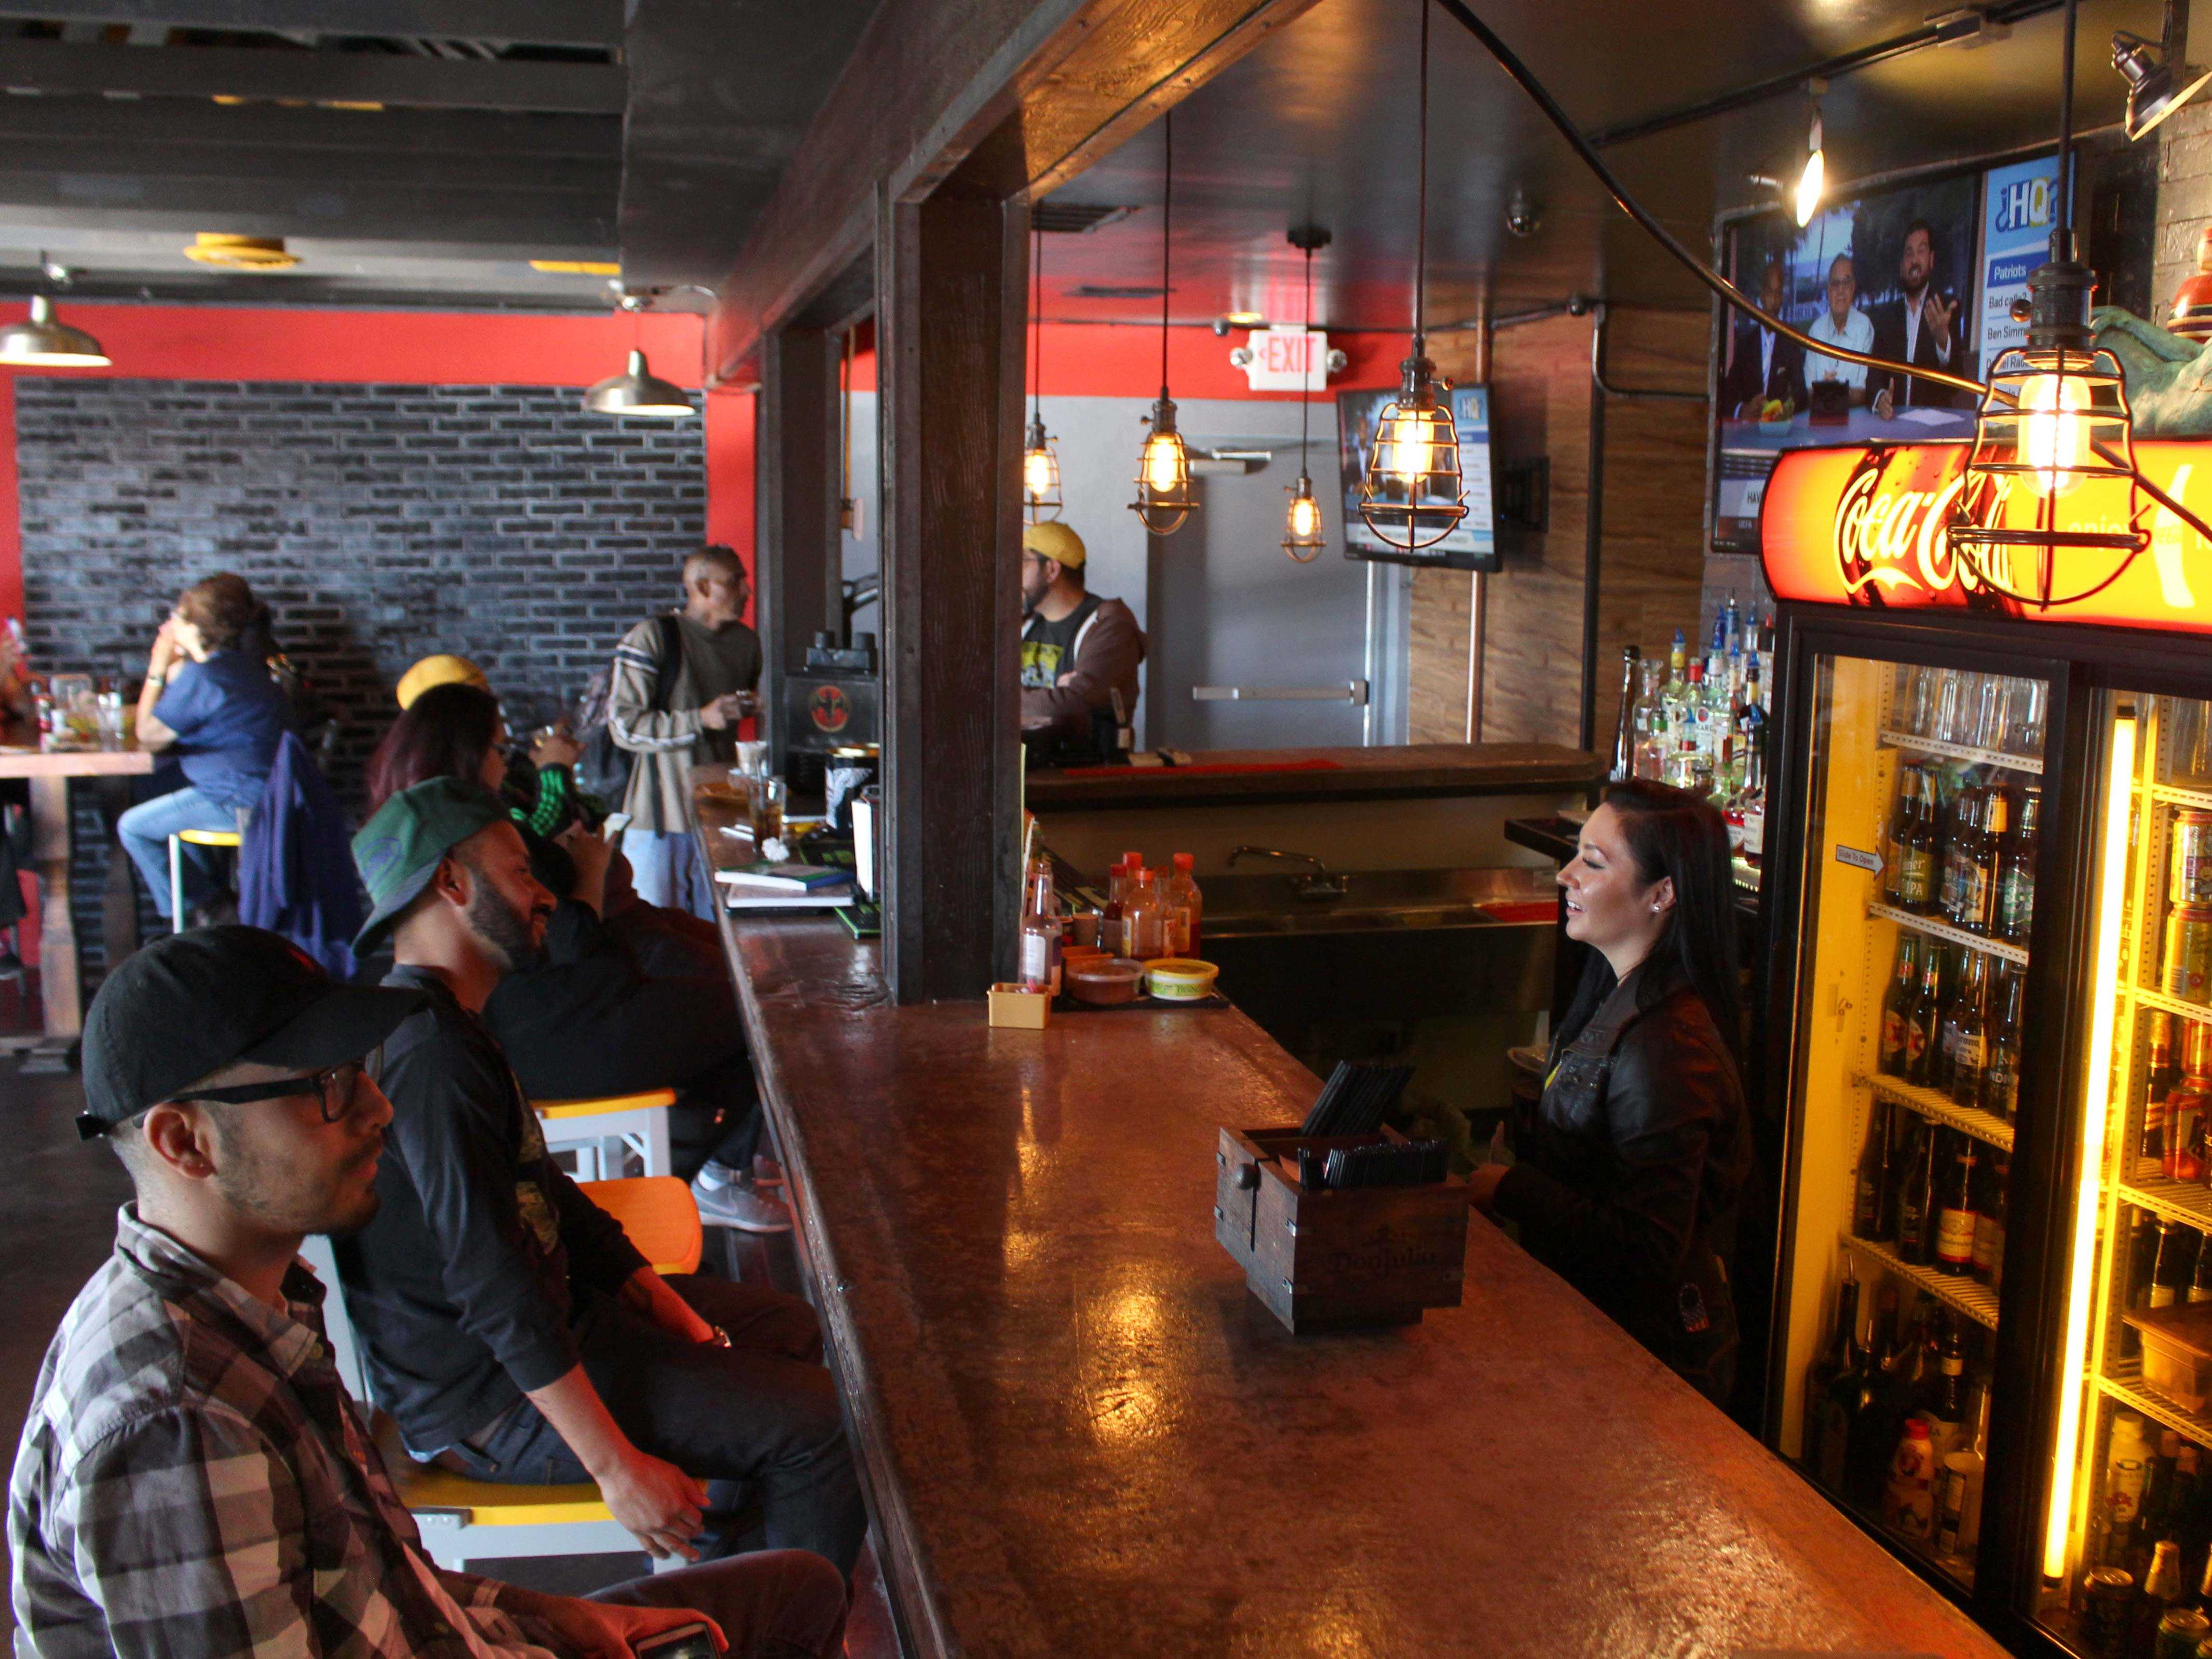 Customers enjoy spending their time at BarMen, a new bar/restaurant that serves tacos and other traditional Mexican dishes.